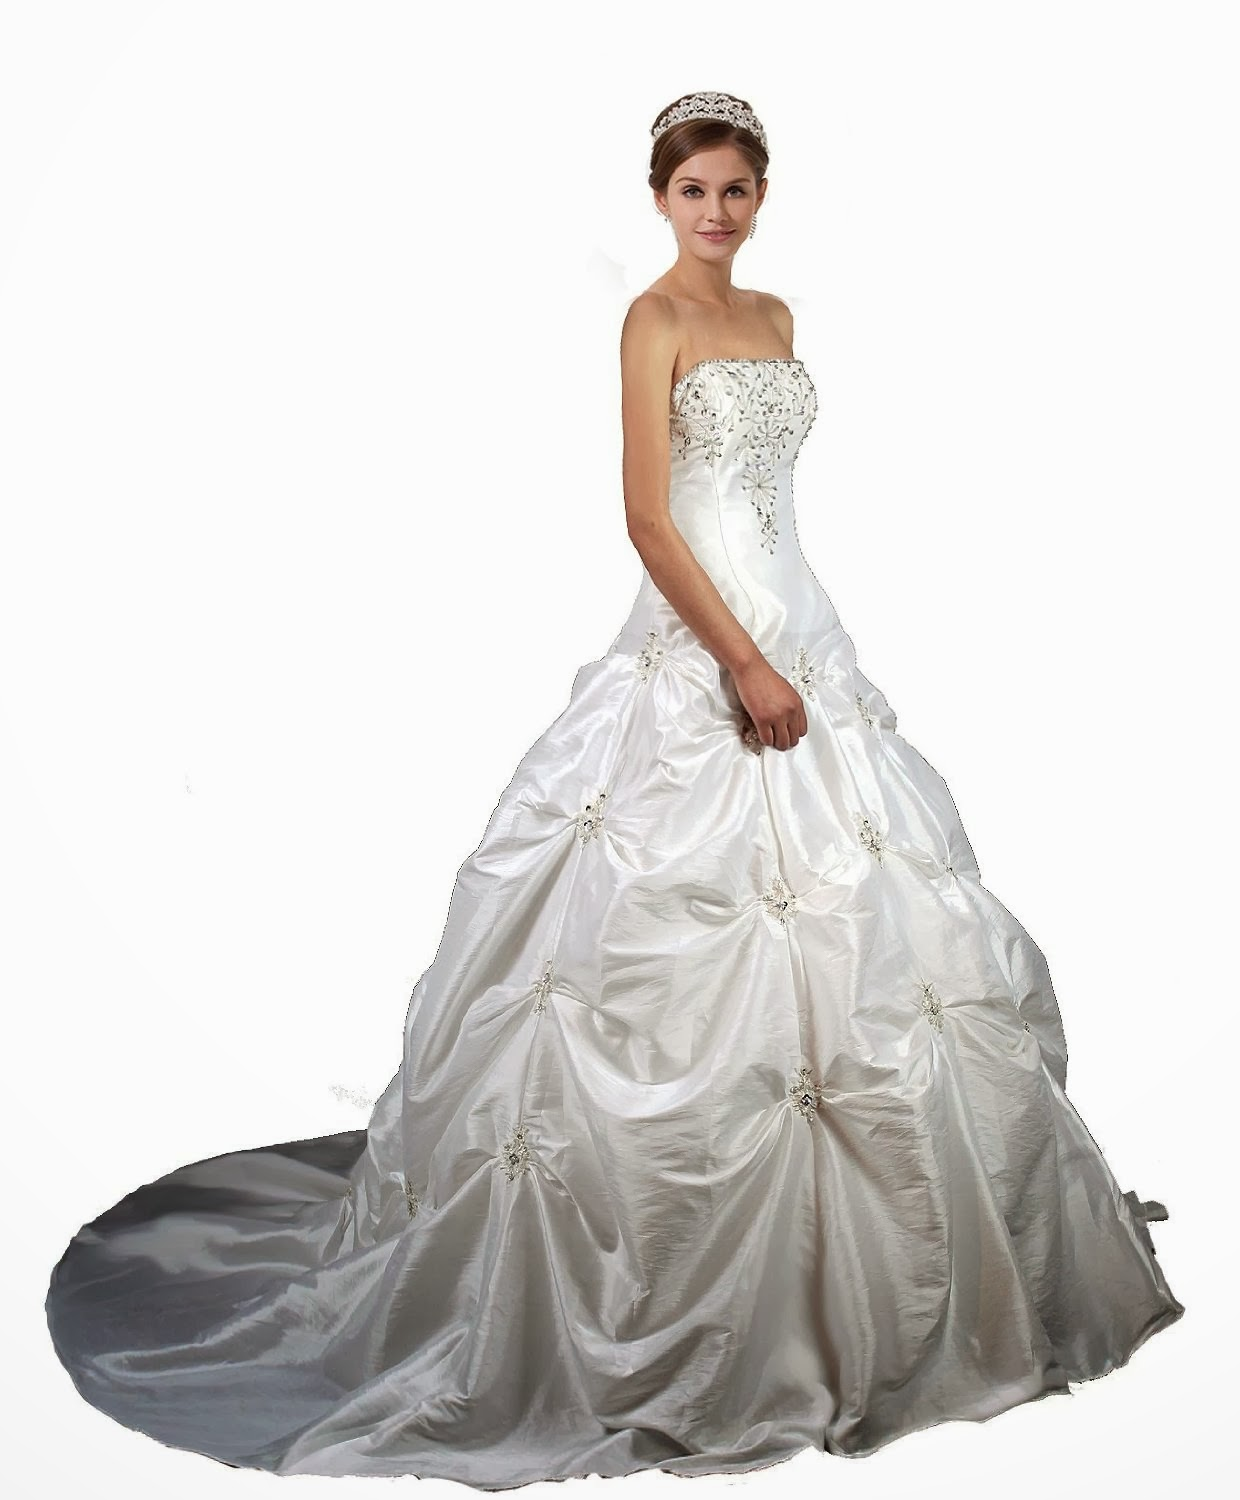 Affordable Wedding Dresses: Inexpensive Wedding Dresses, An Affordable Luxury For The